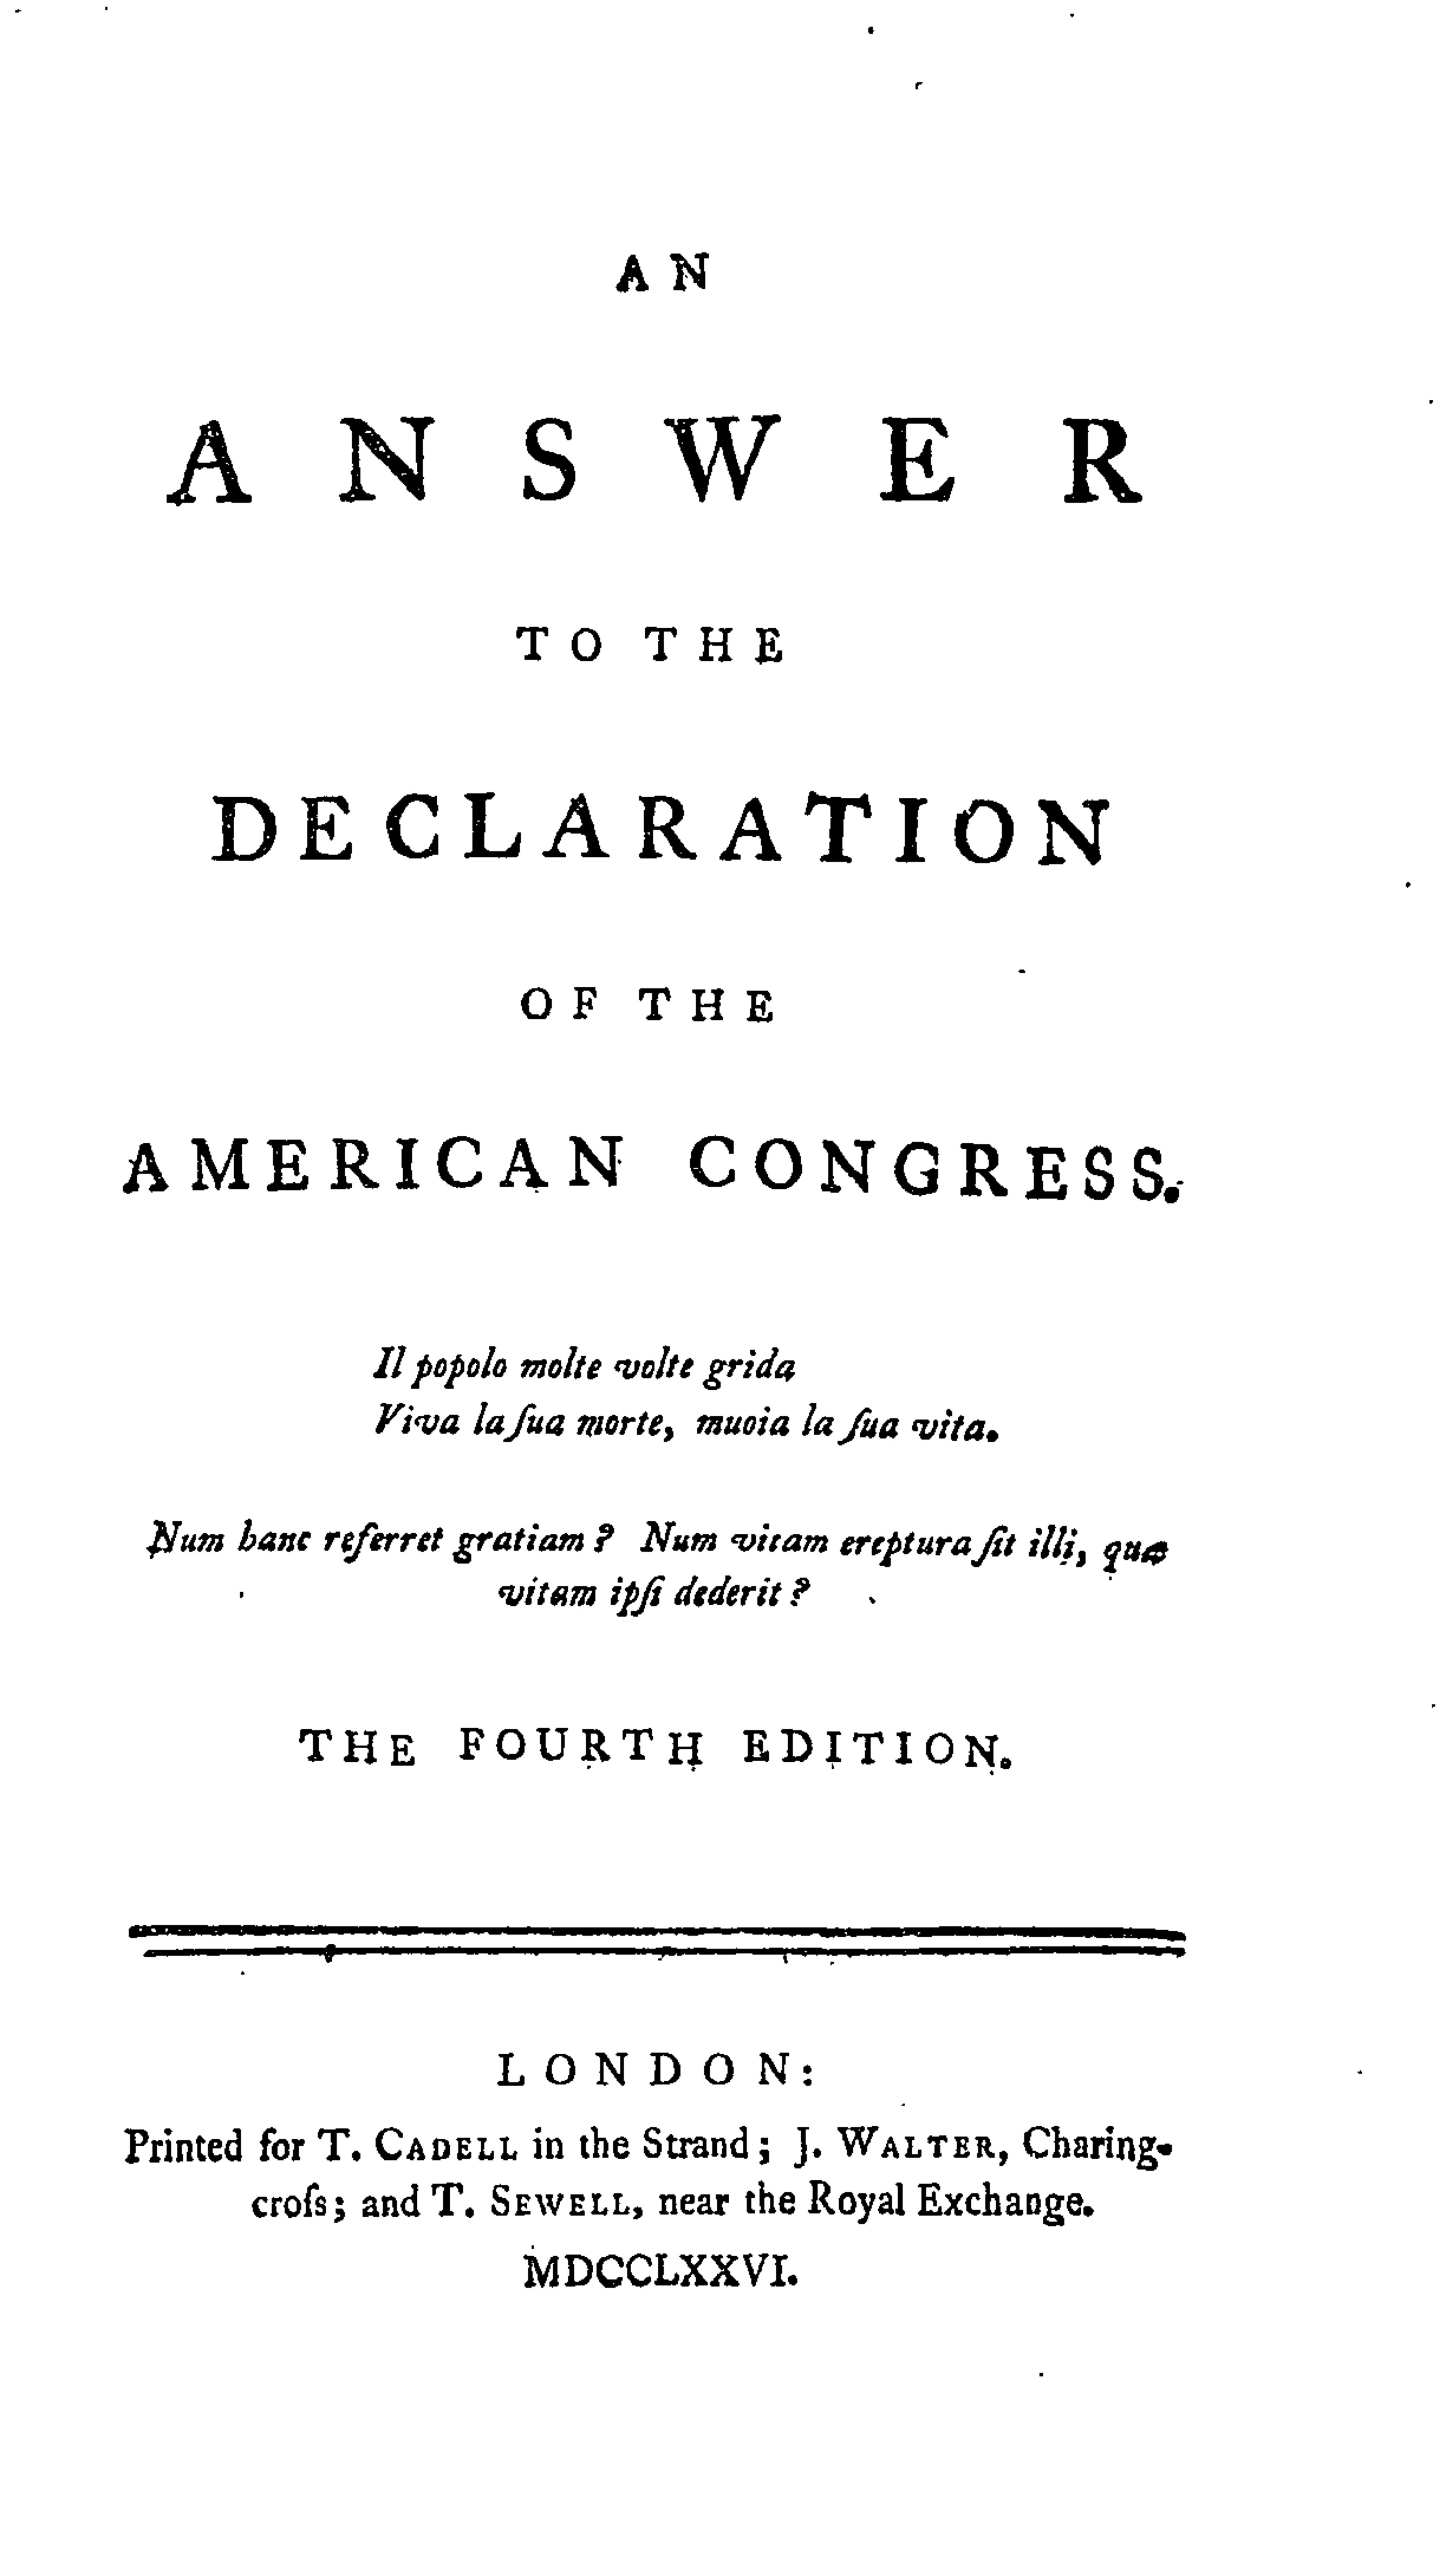 What are some reasons that the colonists wouldn't want to declare independence from England?